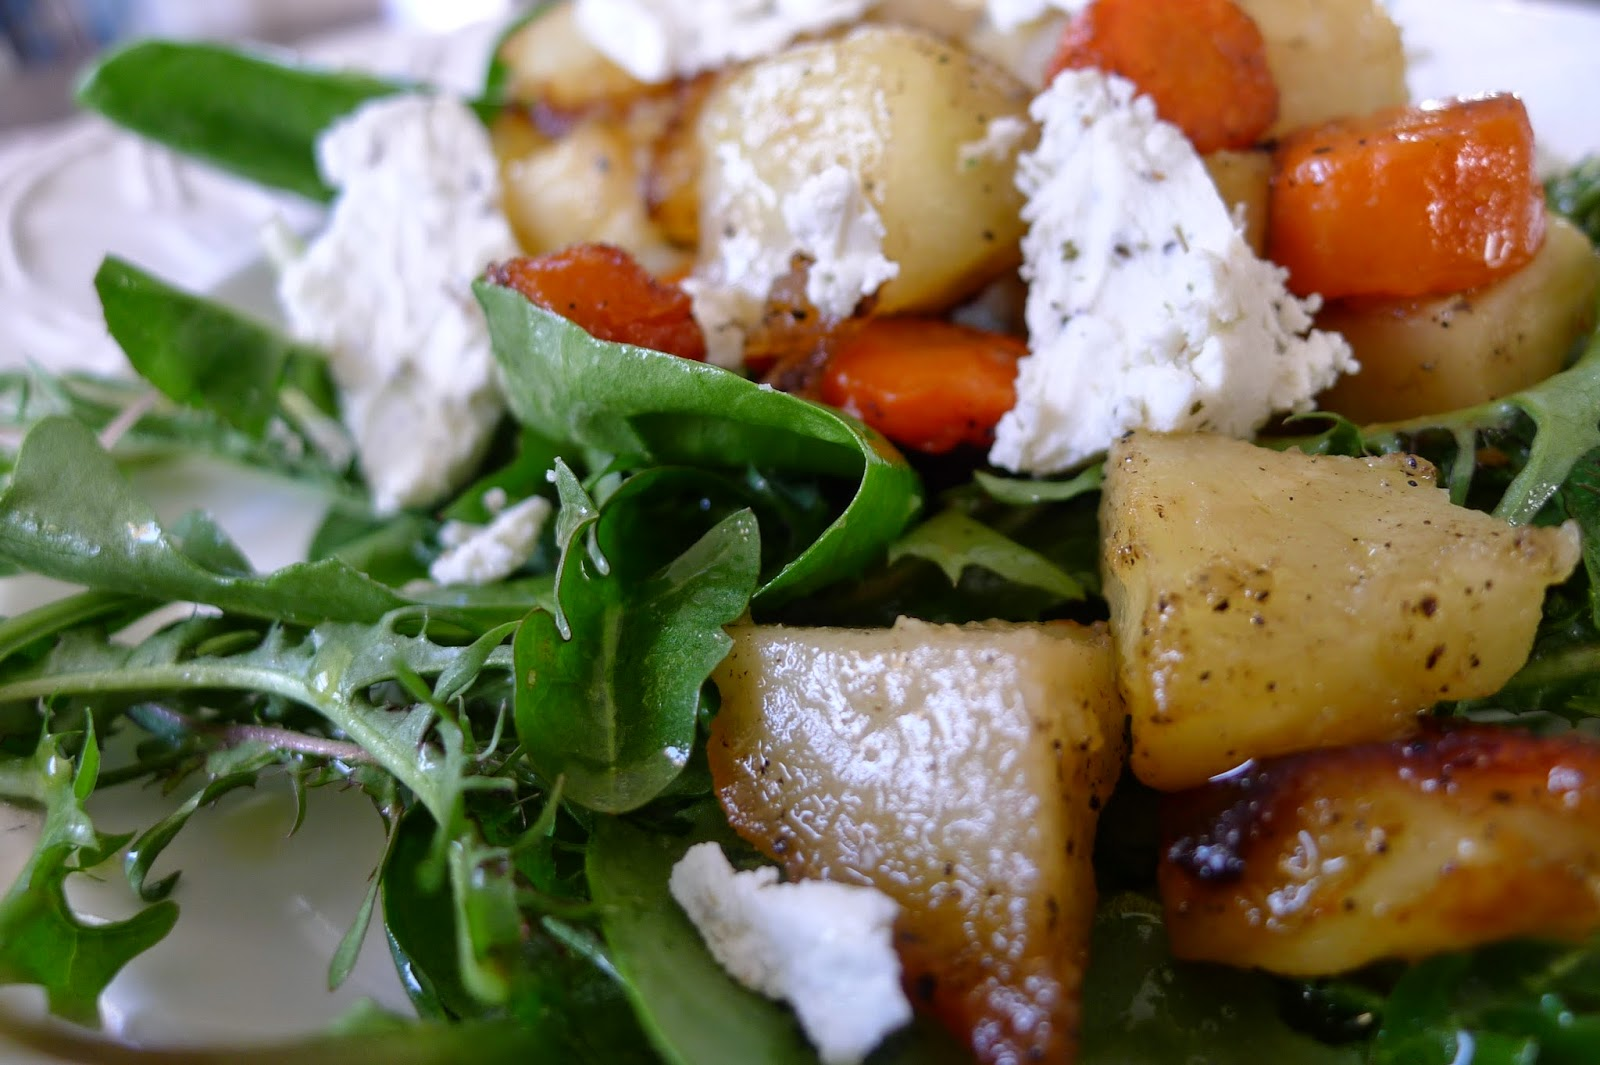 ... : Warm Maple Roasted Vegetables and Goat Cheese Over Spring Greens